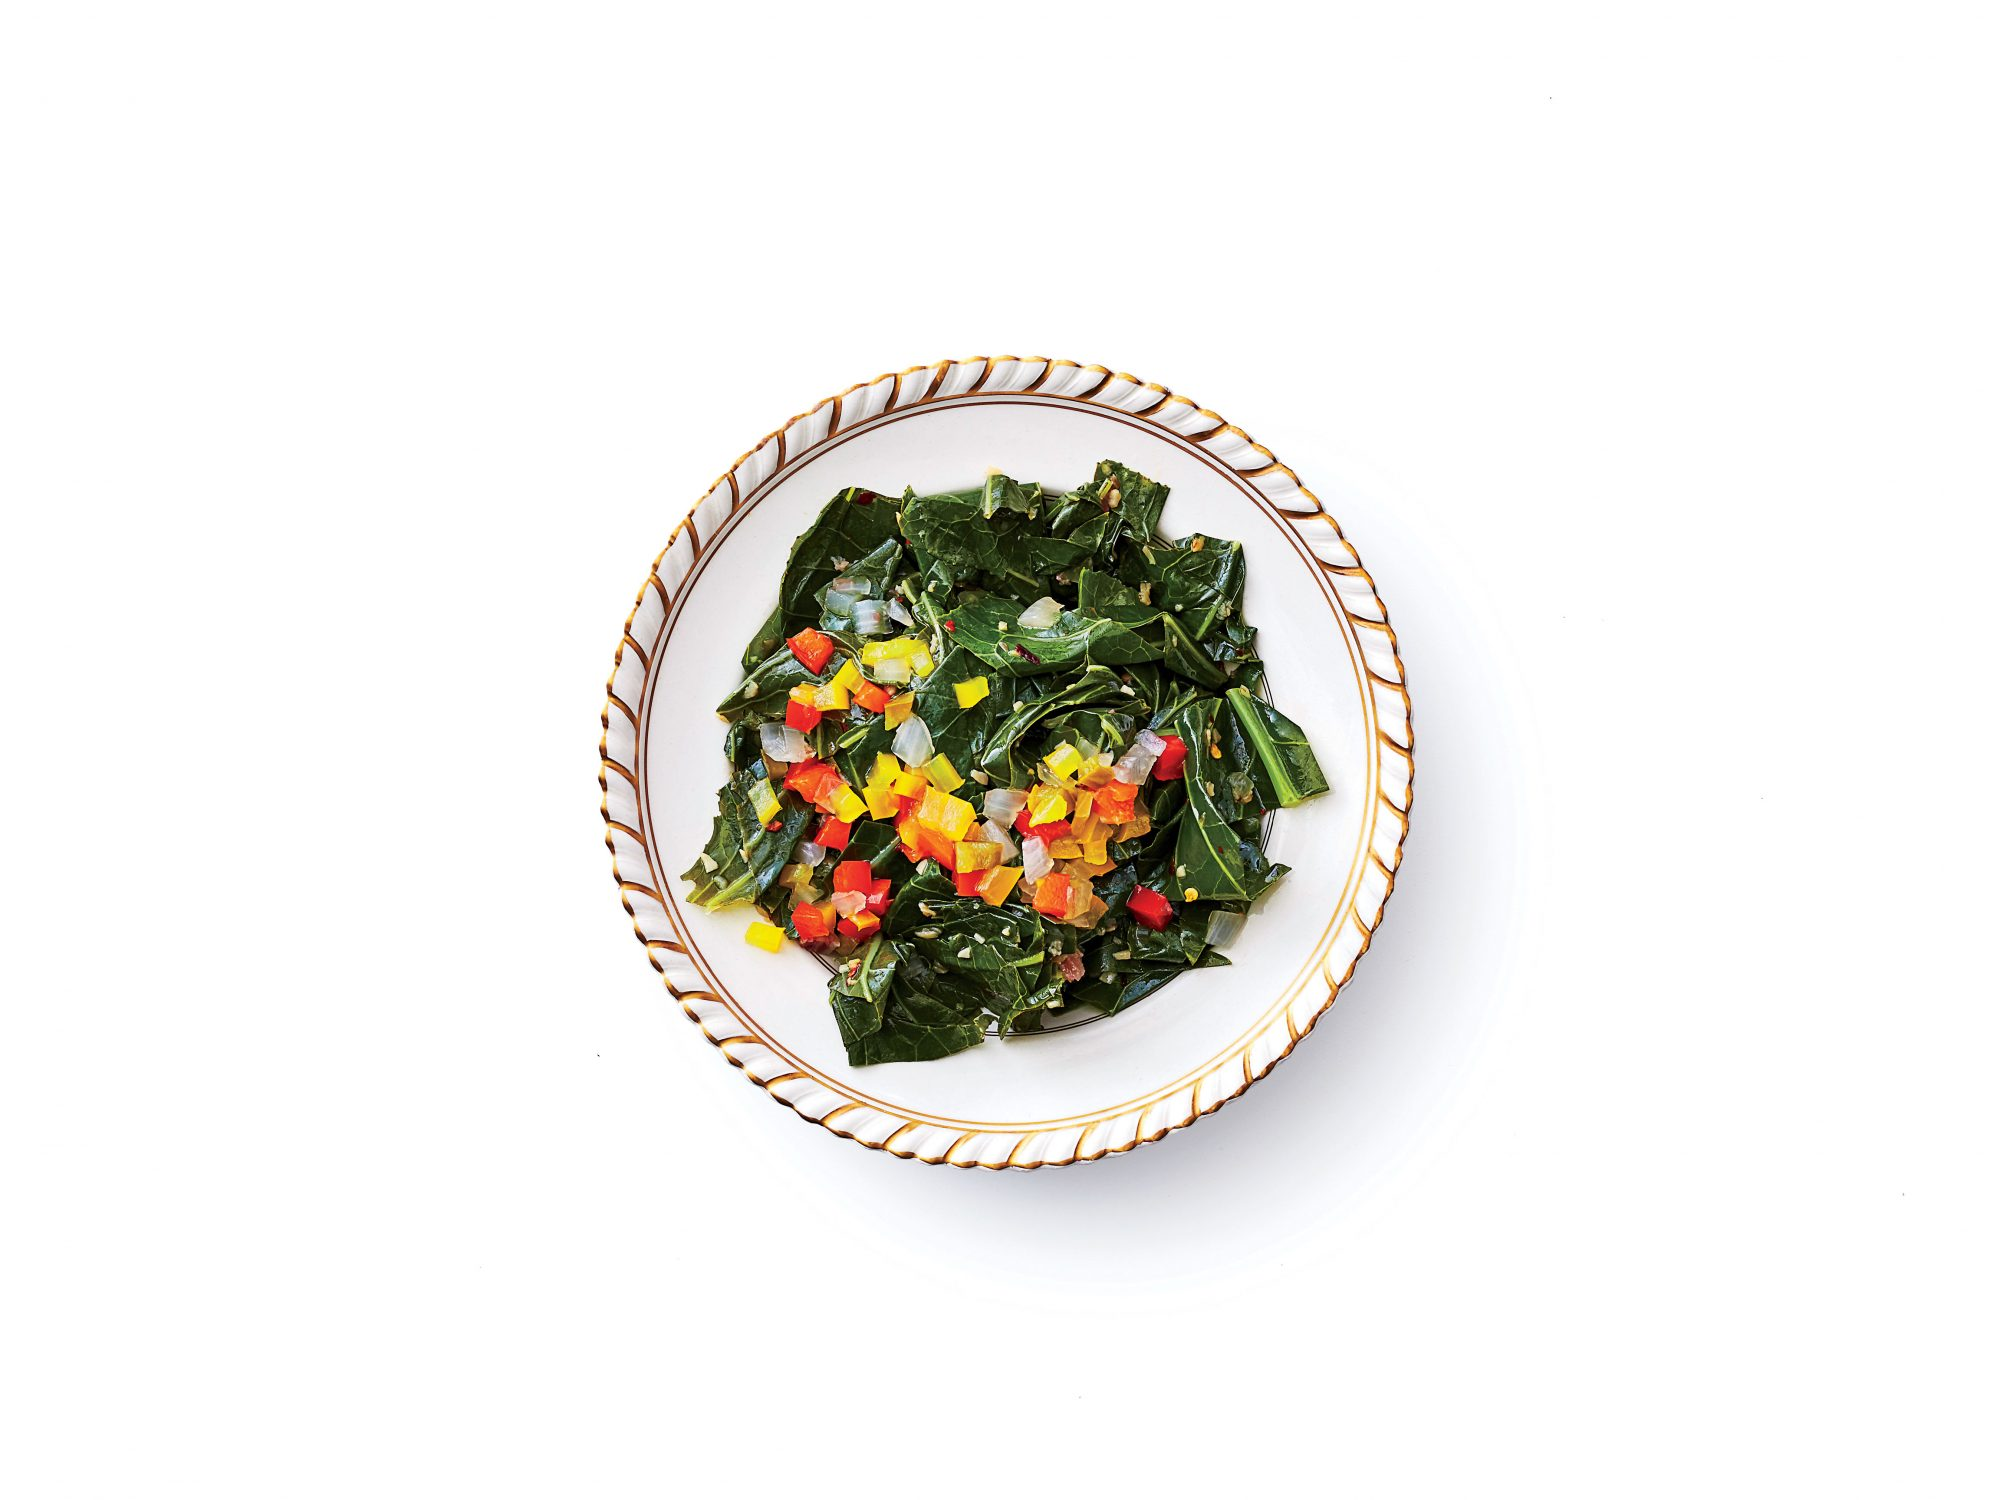 Garlicky Collard Greens with Confetti Chowchow